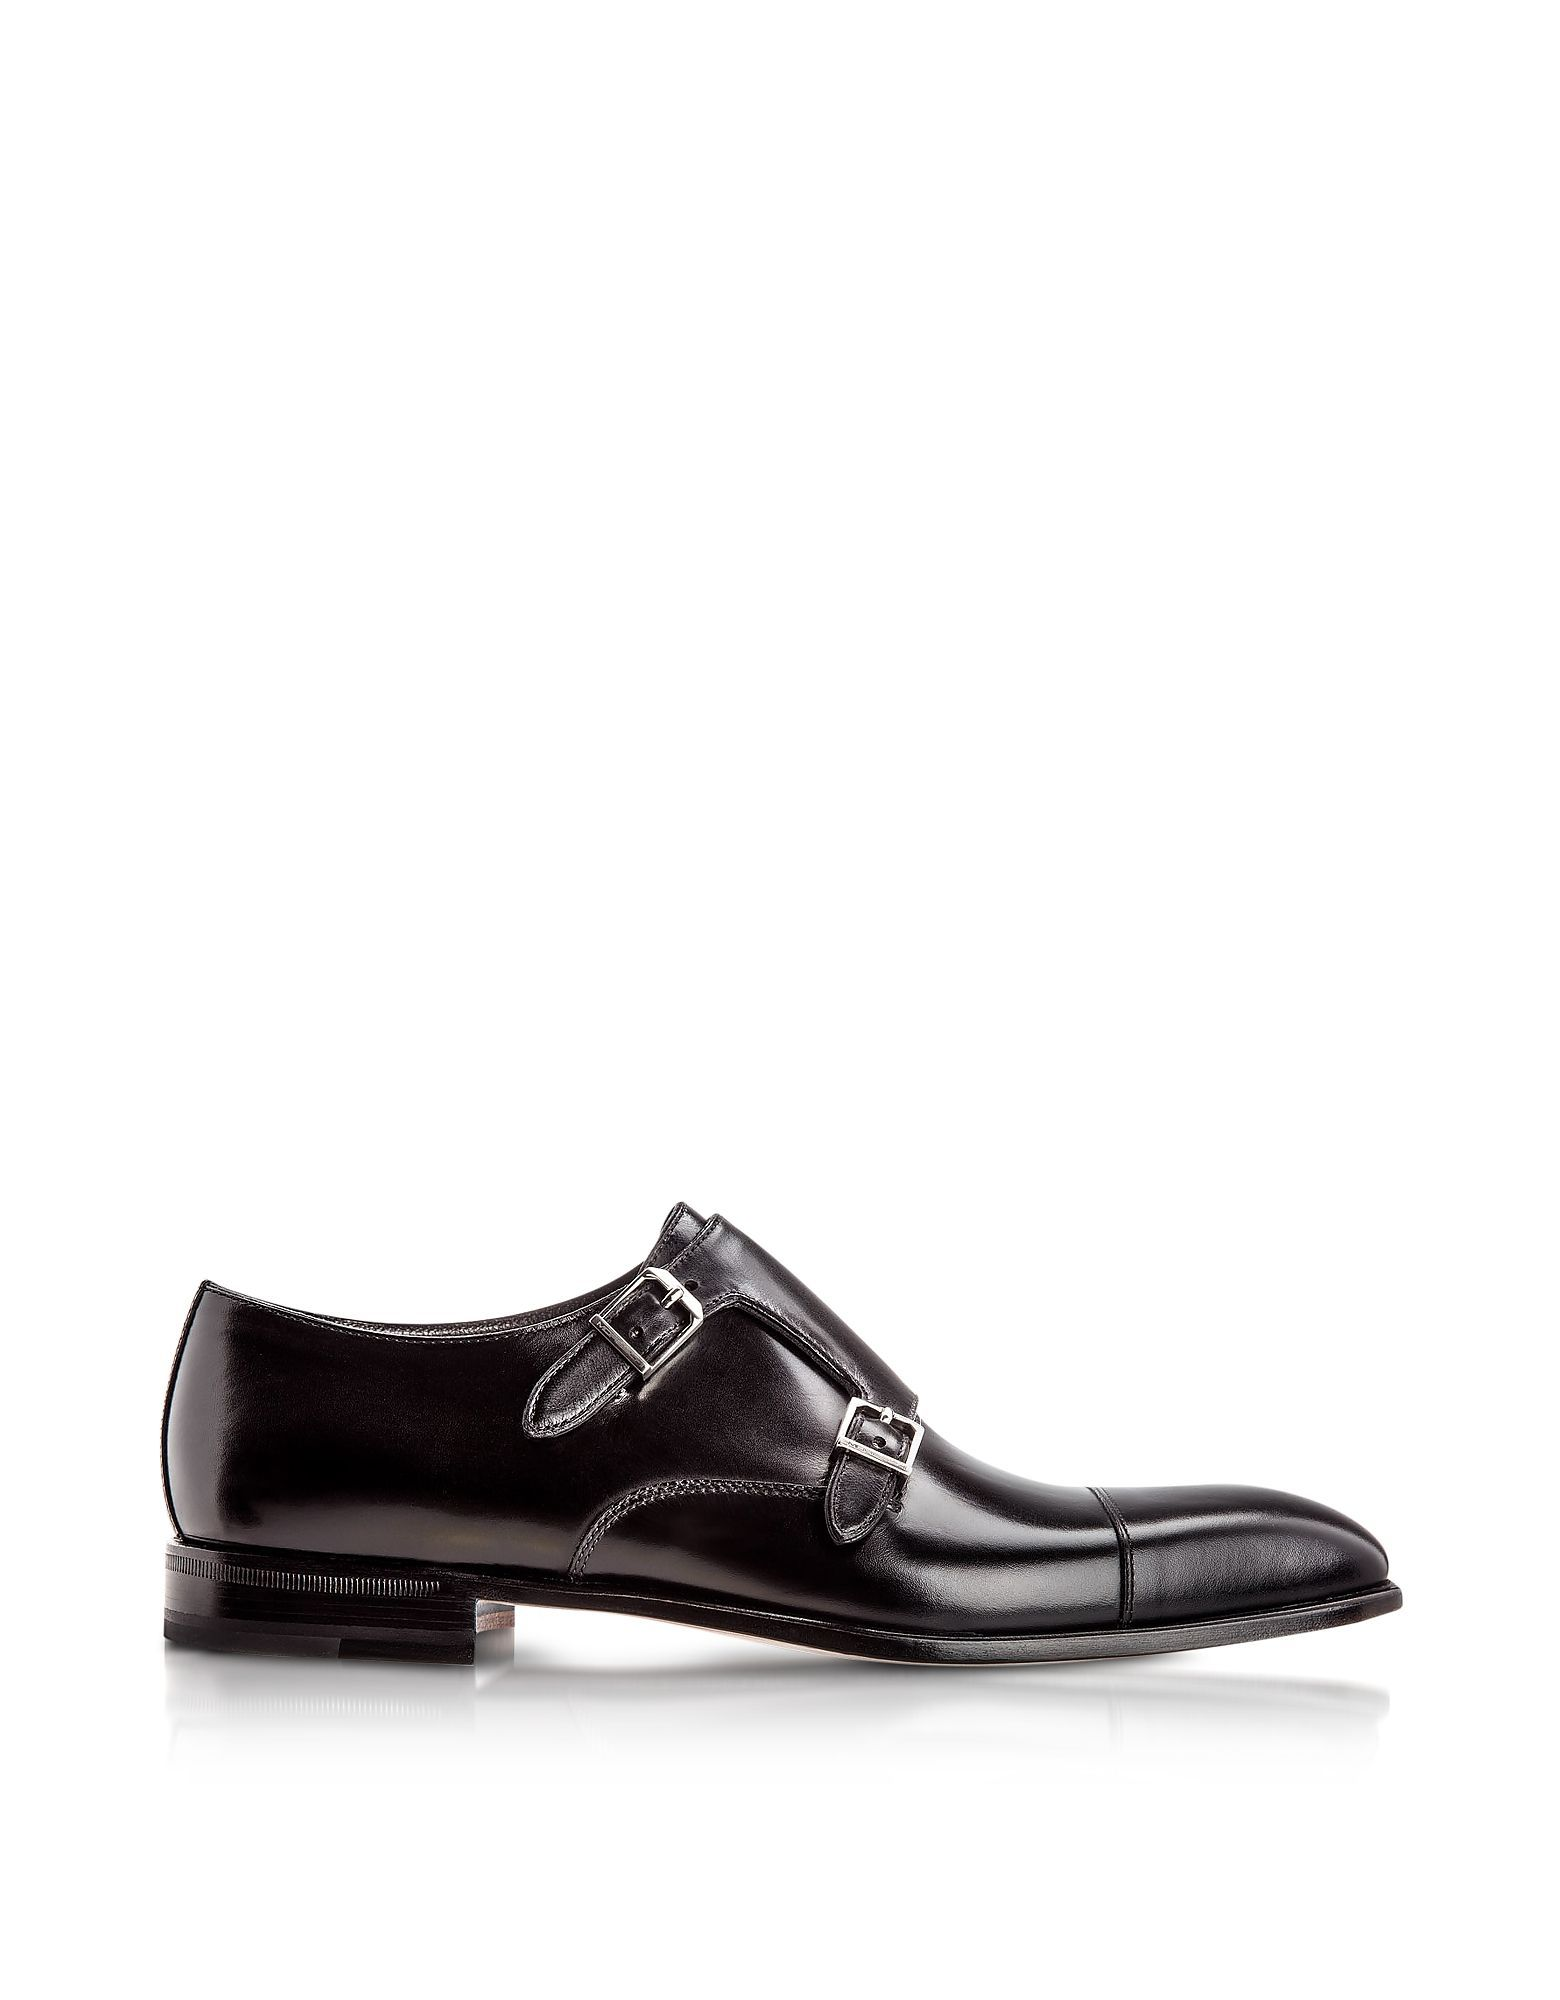 MORESCHI MEN'S TORONTOBLACK BLACK LEATHER MONK STRAP SHOES